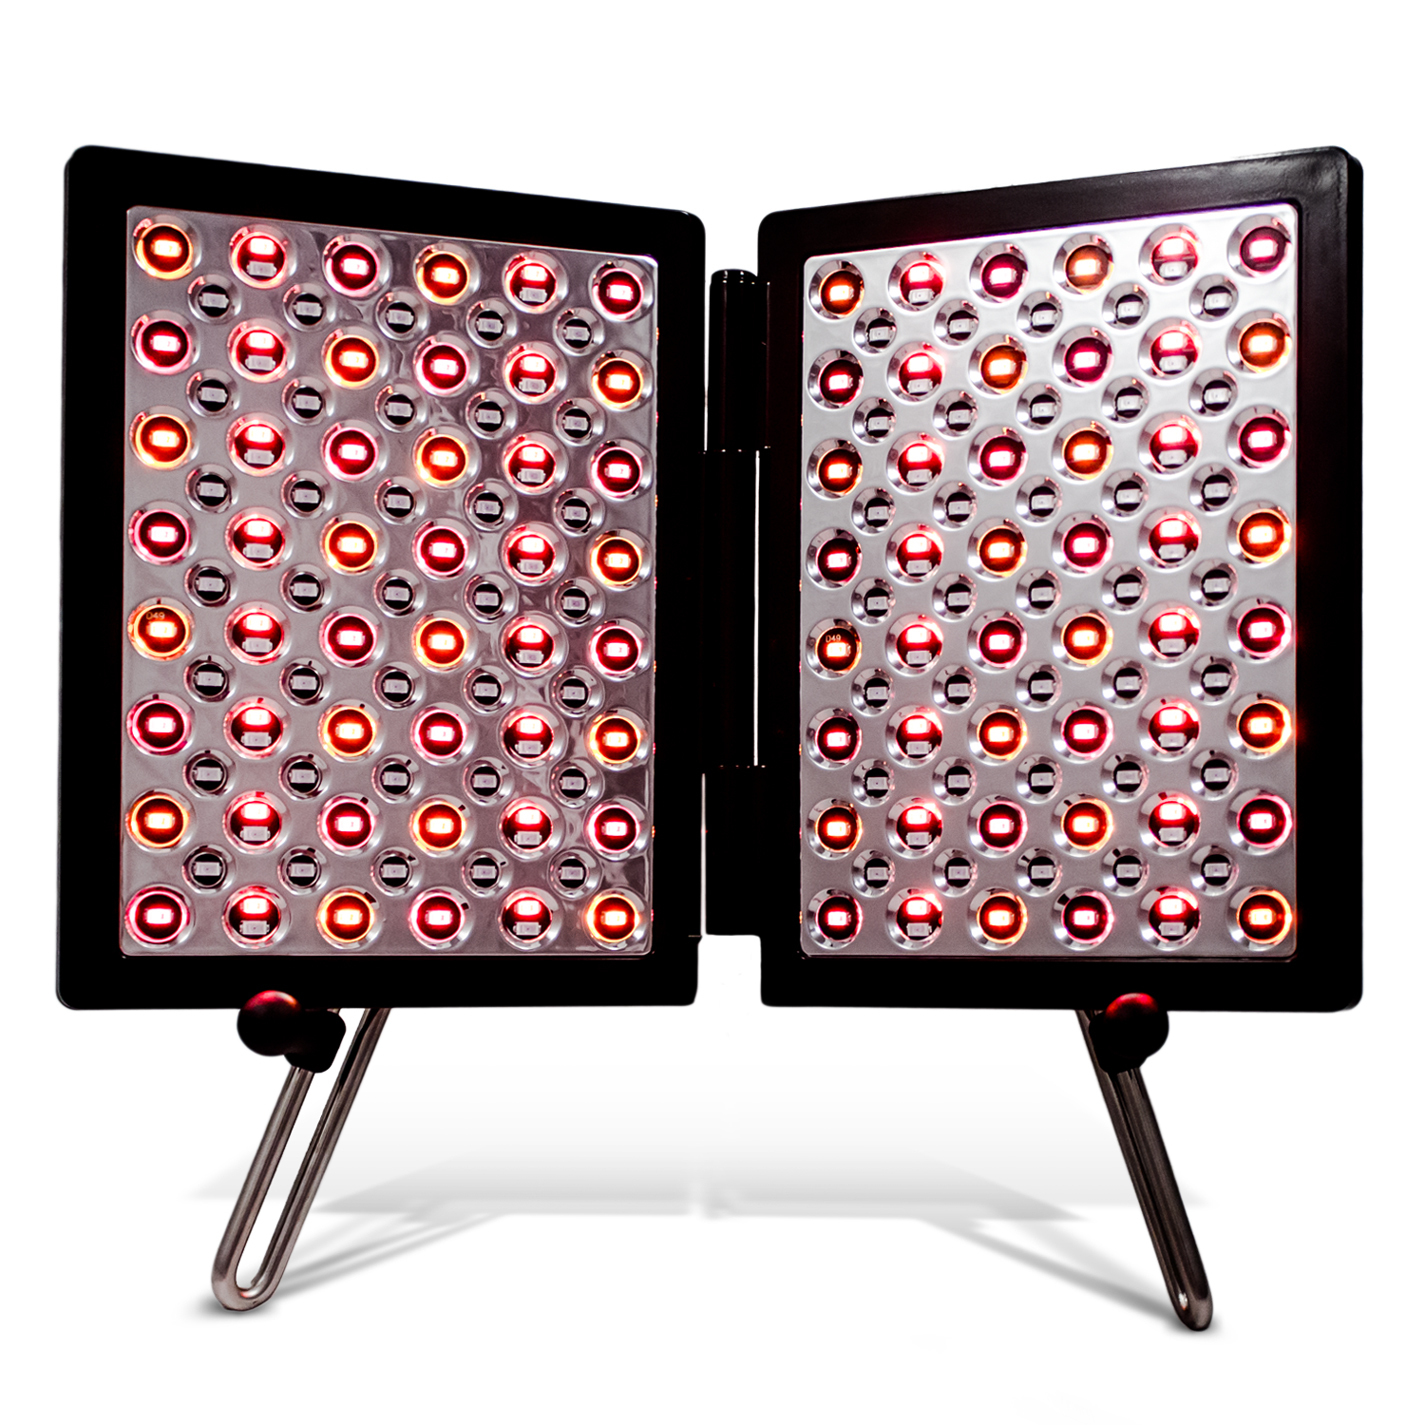 DPL II Professional Light Therapy Panel System 00147